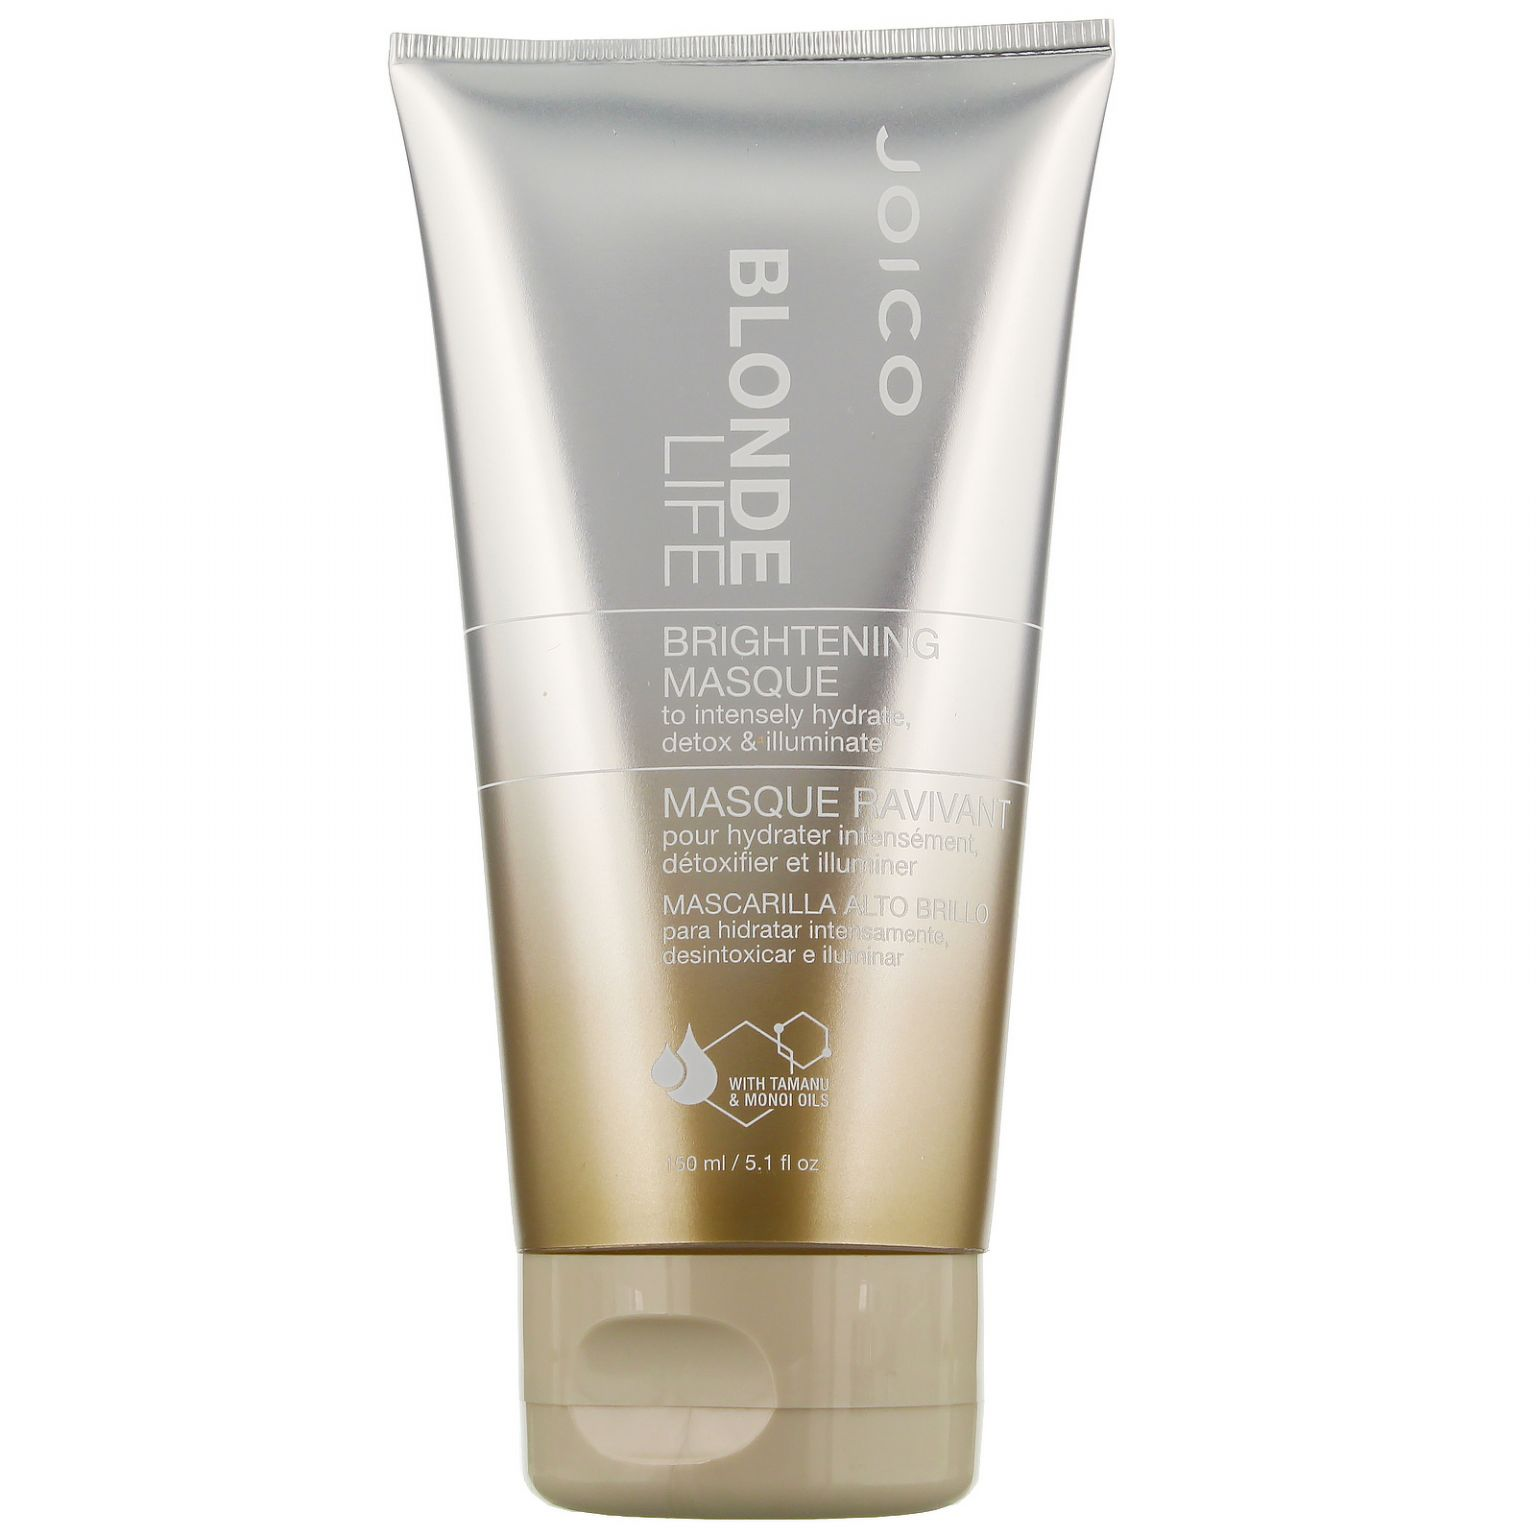 joico blonde life masque reviews